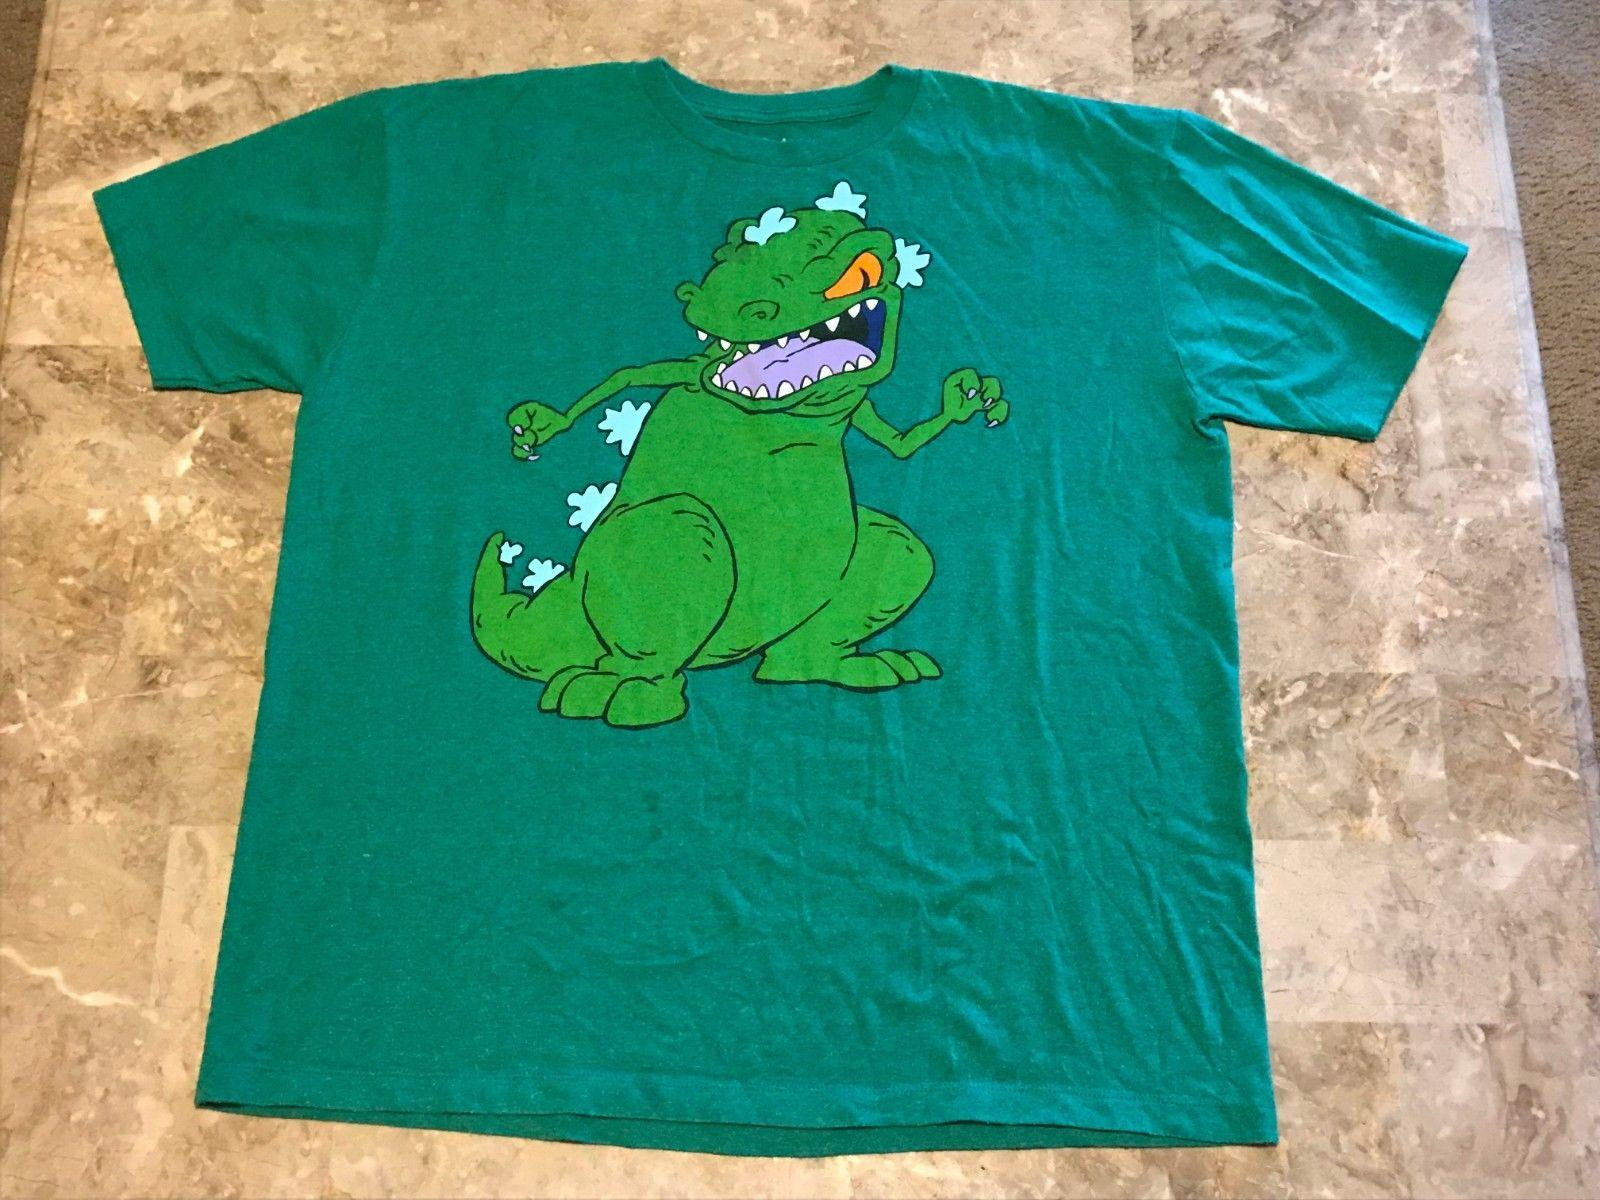 965656e9a95 Nickelodeon Rugrats Reptar Green Cartoon TV Show Graphic T Shirt Adult Size  XLFunny Unisex Casual Tshirts Printed Crazy Tshirts From Tshirtkidd